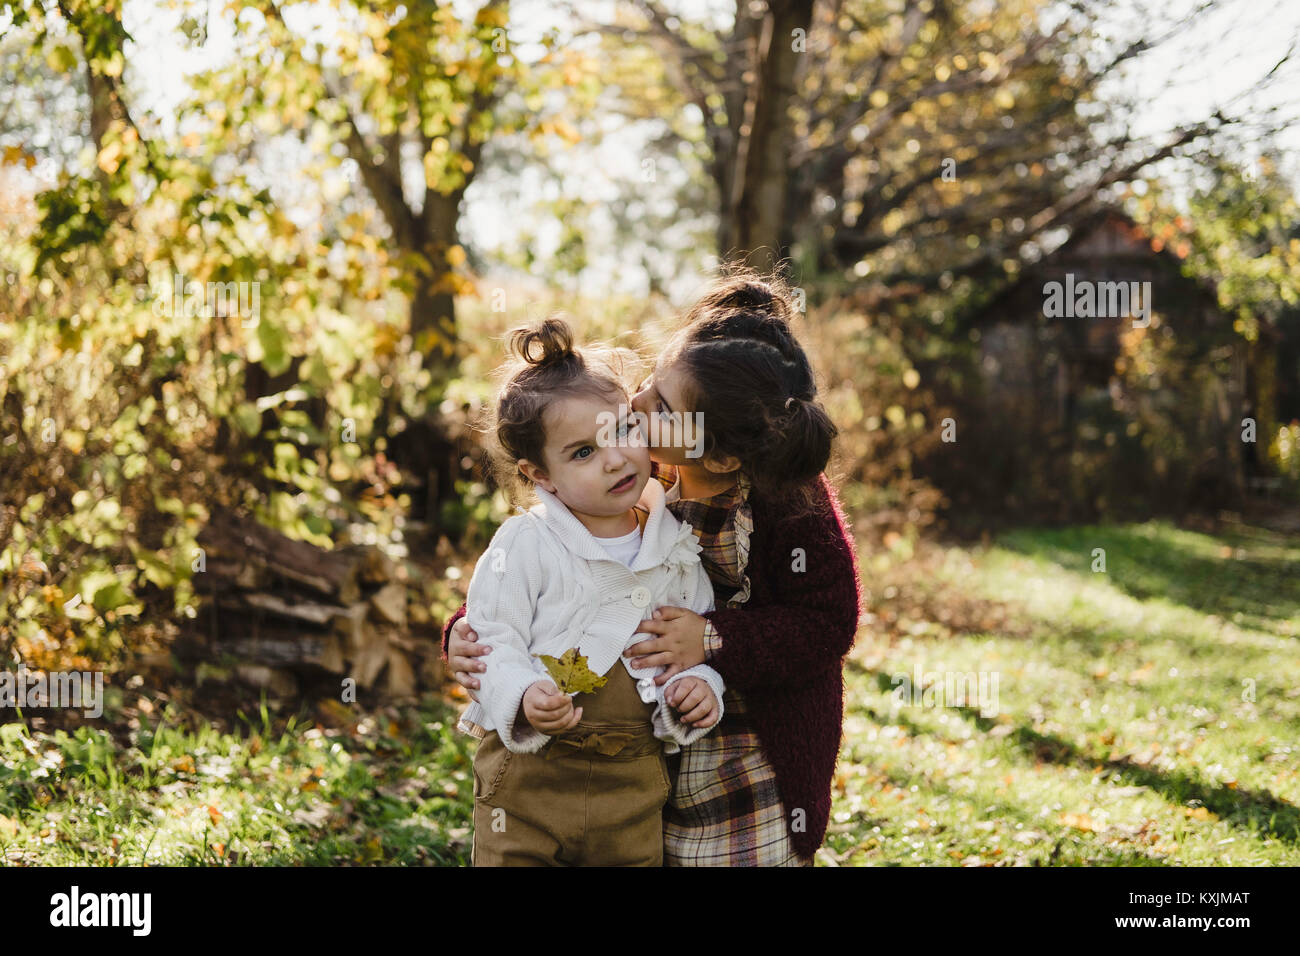 Girl hugging younger sister, in rural setting Stock Photo